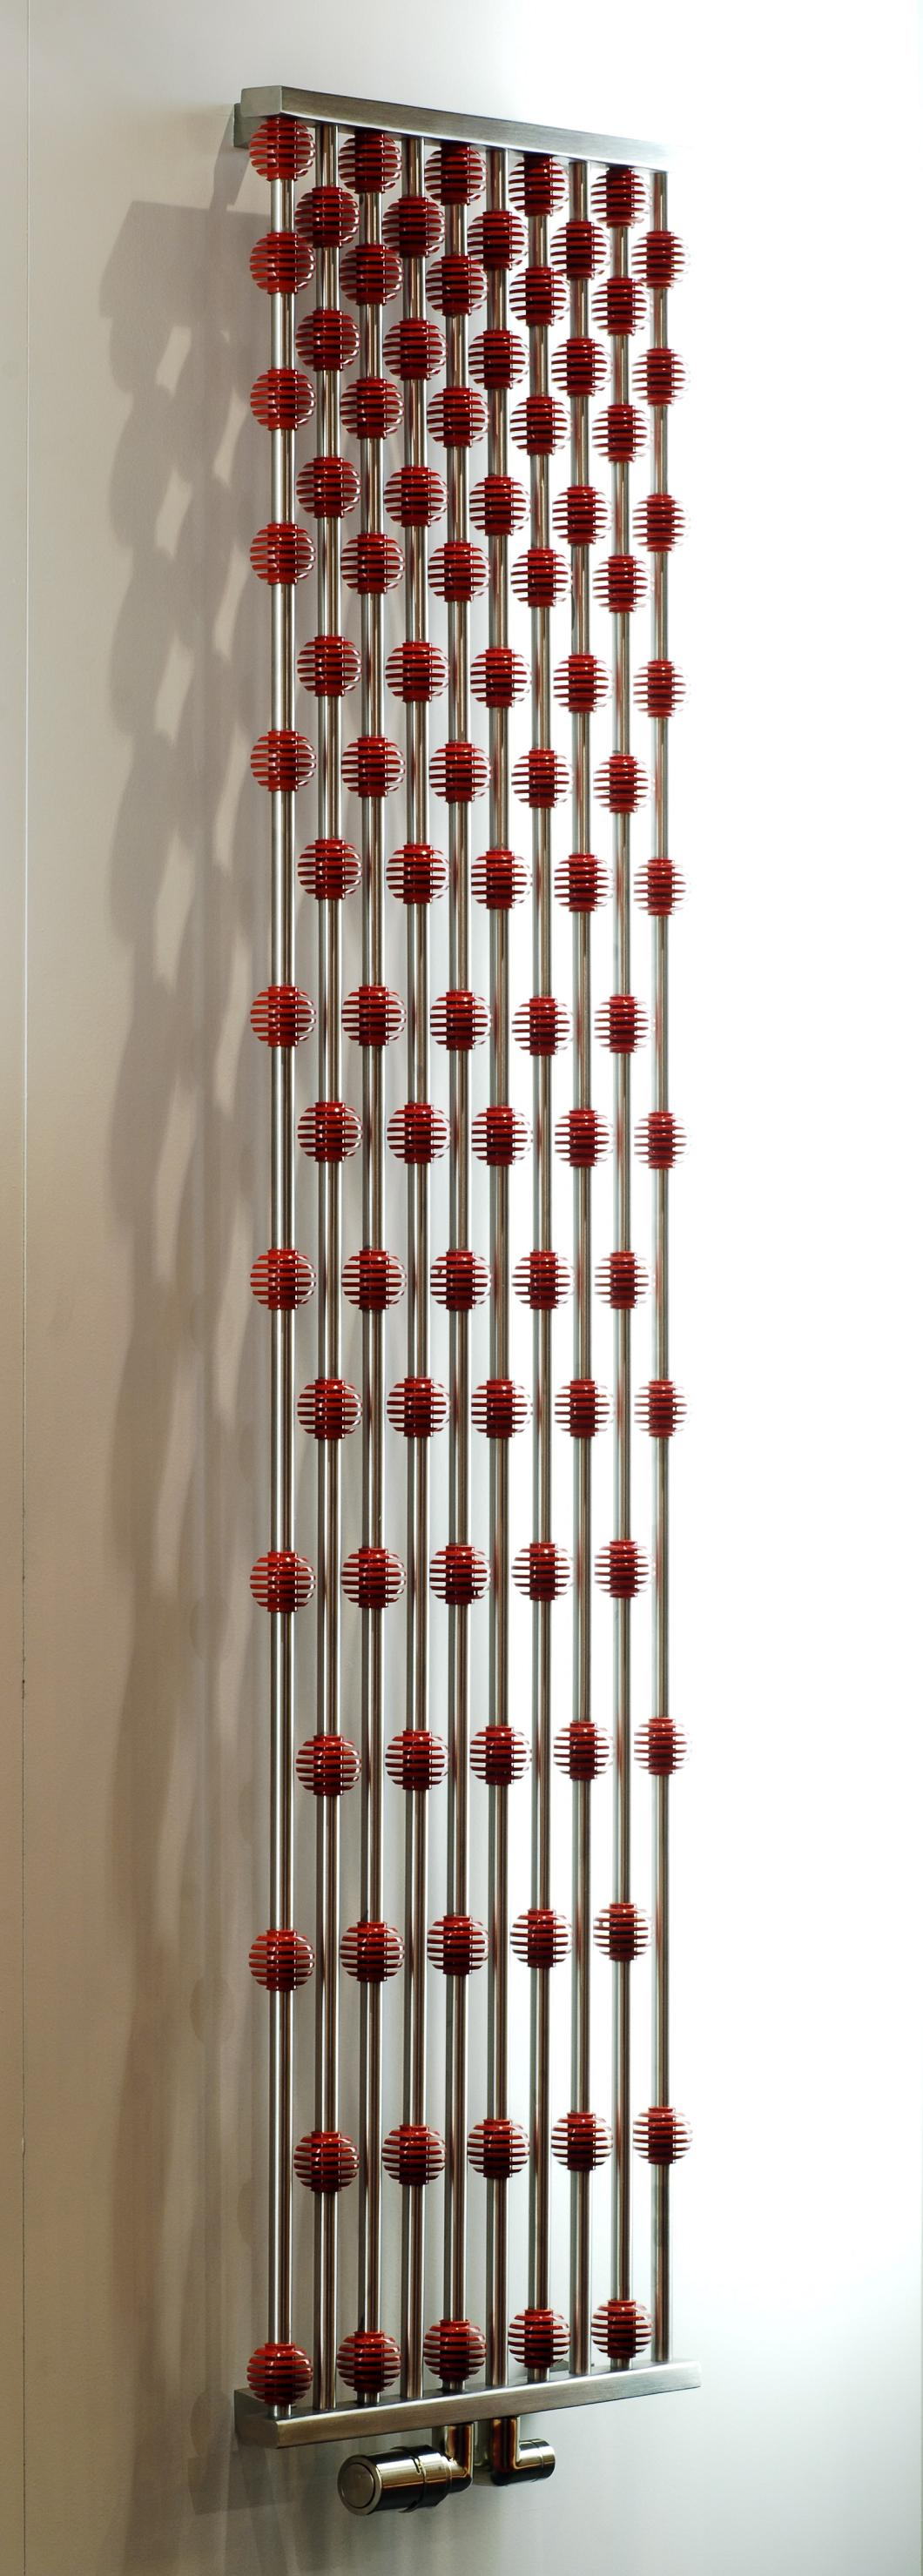 Aeon Abacus 16-95ral_red